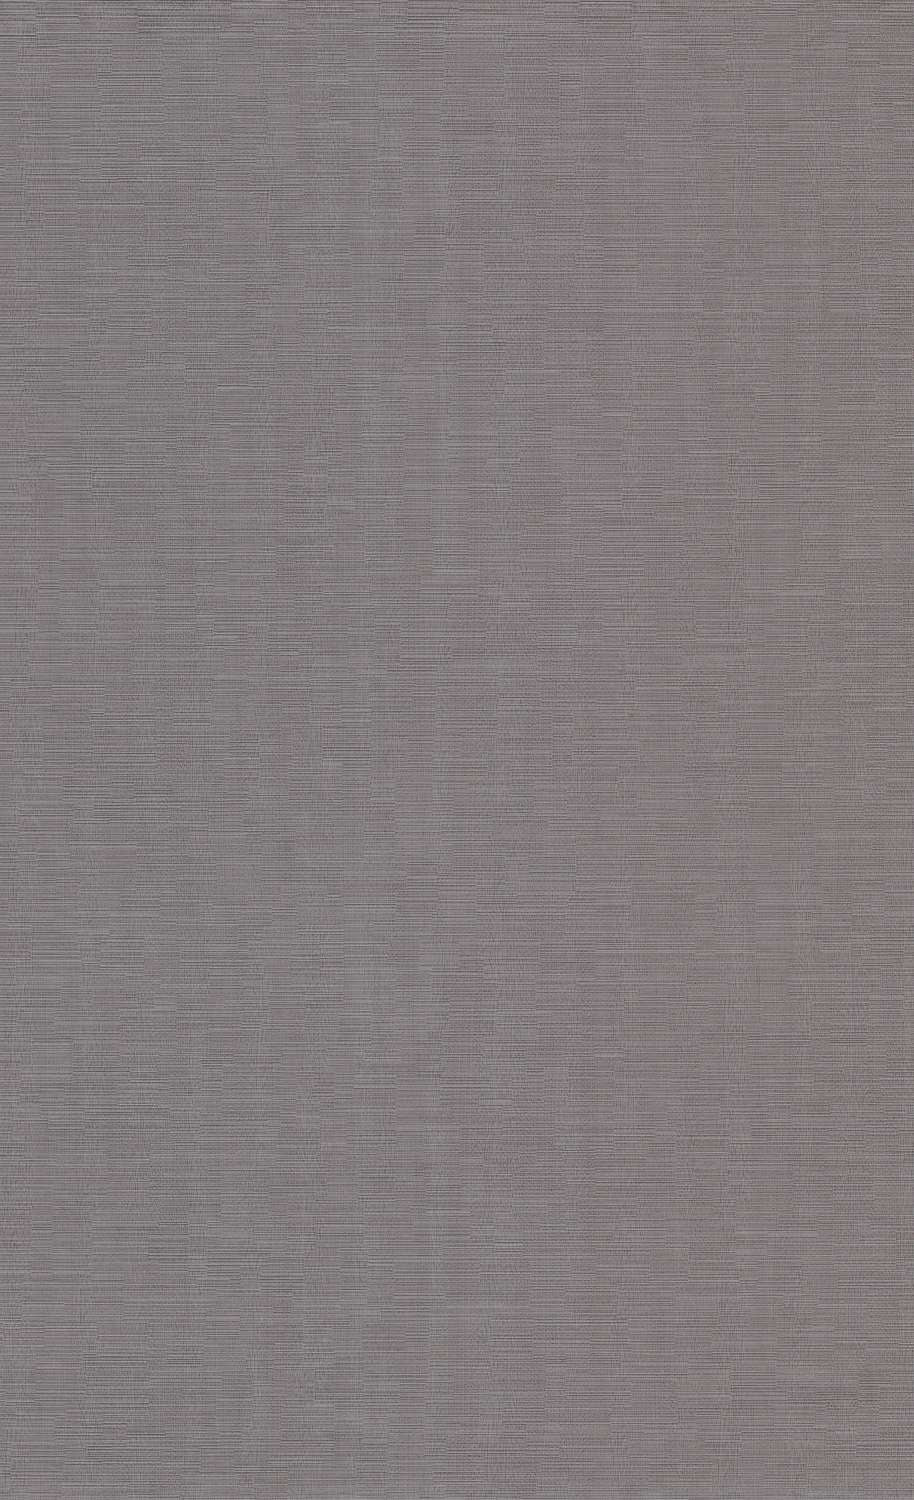 Ash Gray Plain Vinyl Wallpaper C7310 | Modern Commercial and Hospitality Wall Covering